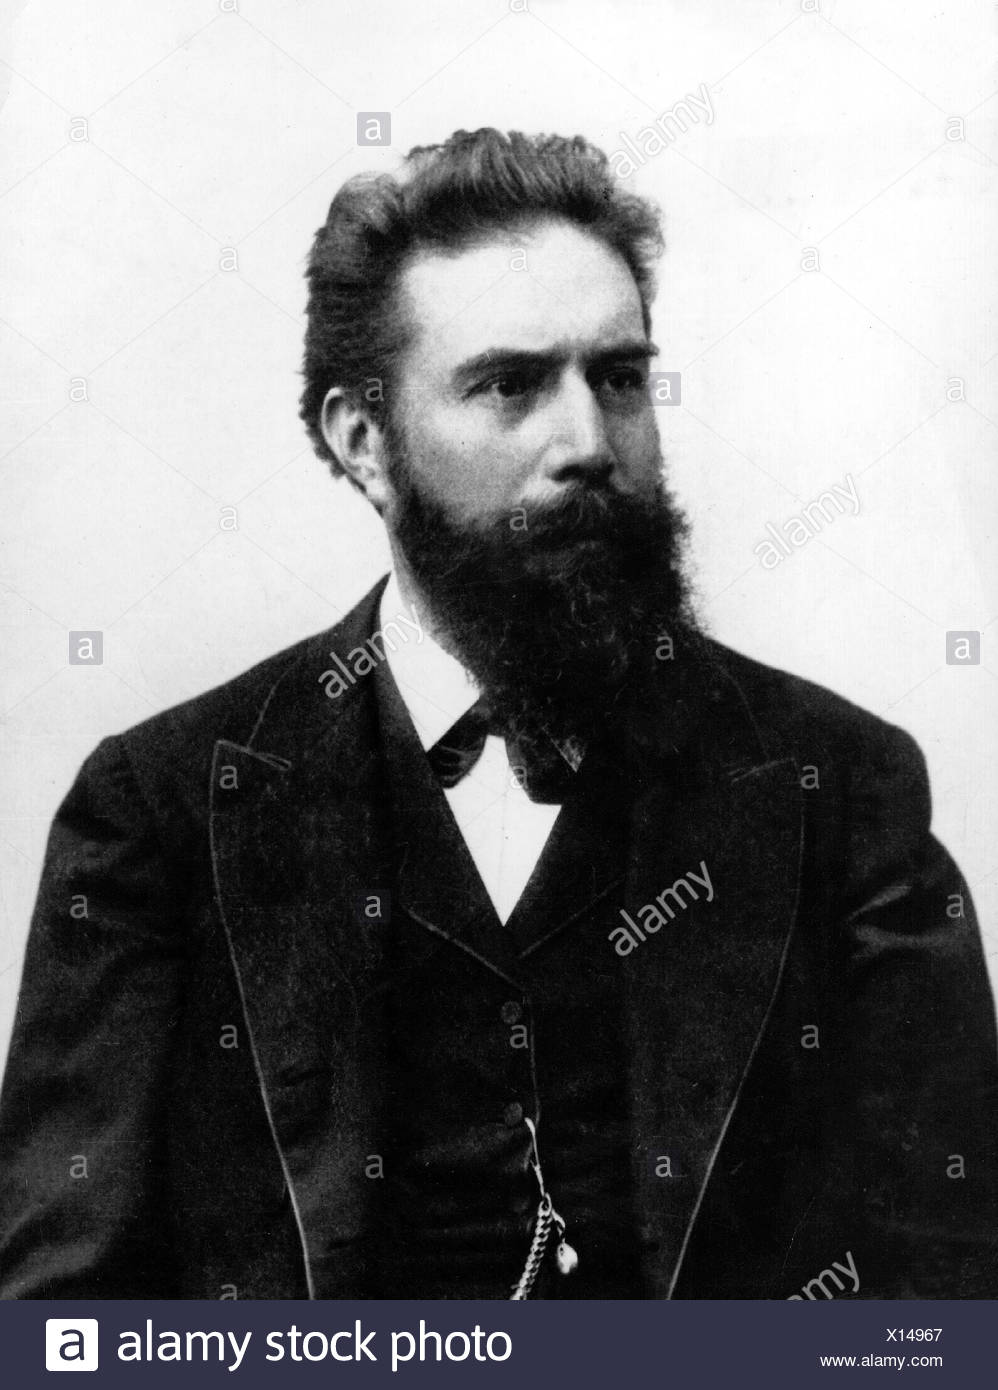 wilhelm conrad roentgen essay Wilhelm conrad roentgen was already working on the effects of cathode rays  during 1895, before he actually discovered x-rays.